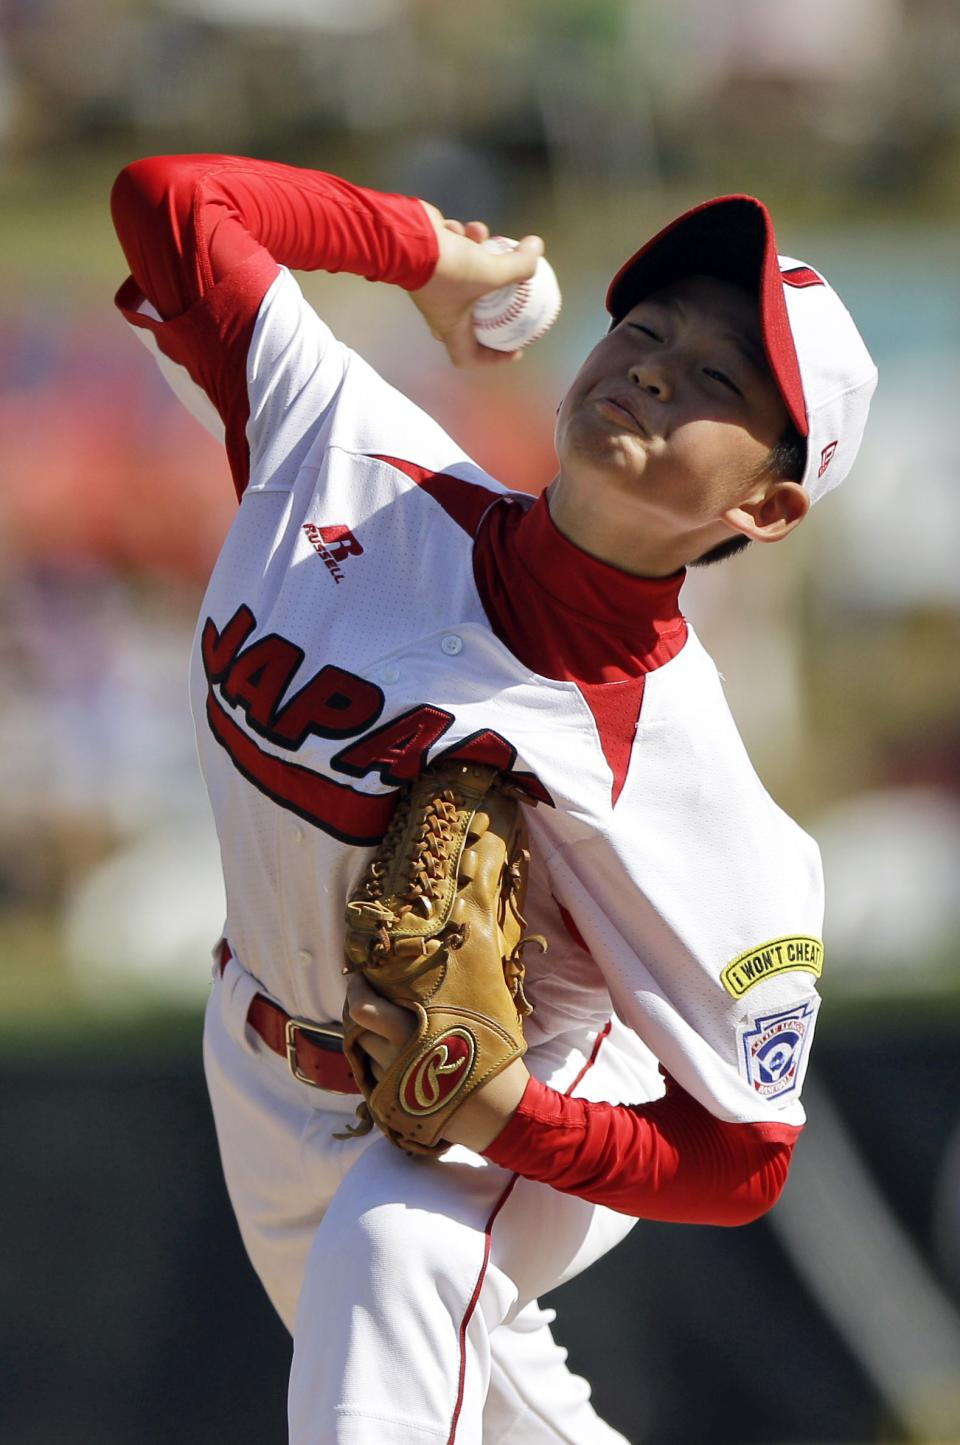 Hamamatsu City, Japan's Shoto Totsuka pitches in the first inning of a baseball game against Langley, British Columbia at the Little League World Series, Tuesday, Aug. 23, 2011, in South Williamsport, Pa. Hamamatsu City, Japan won 4-0. (AP Photo/Matt Slocum)